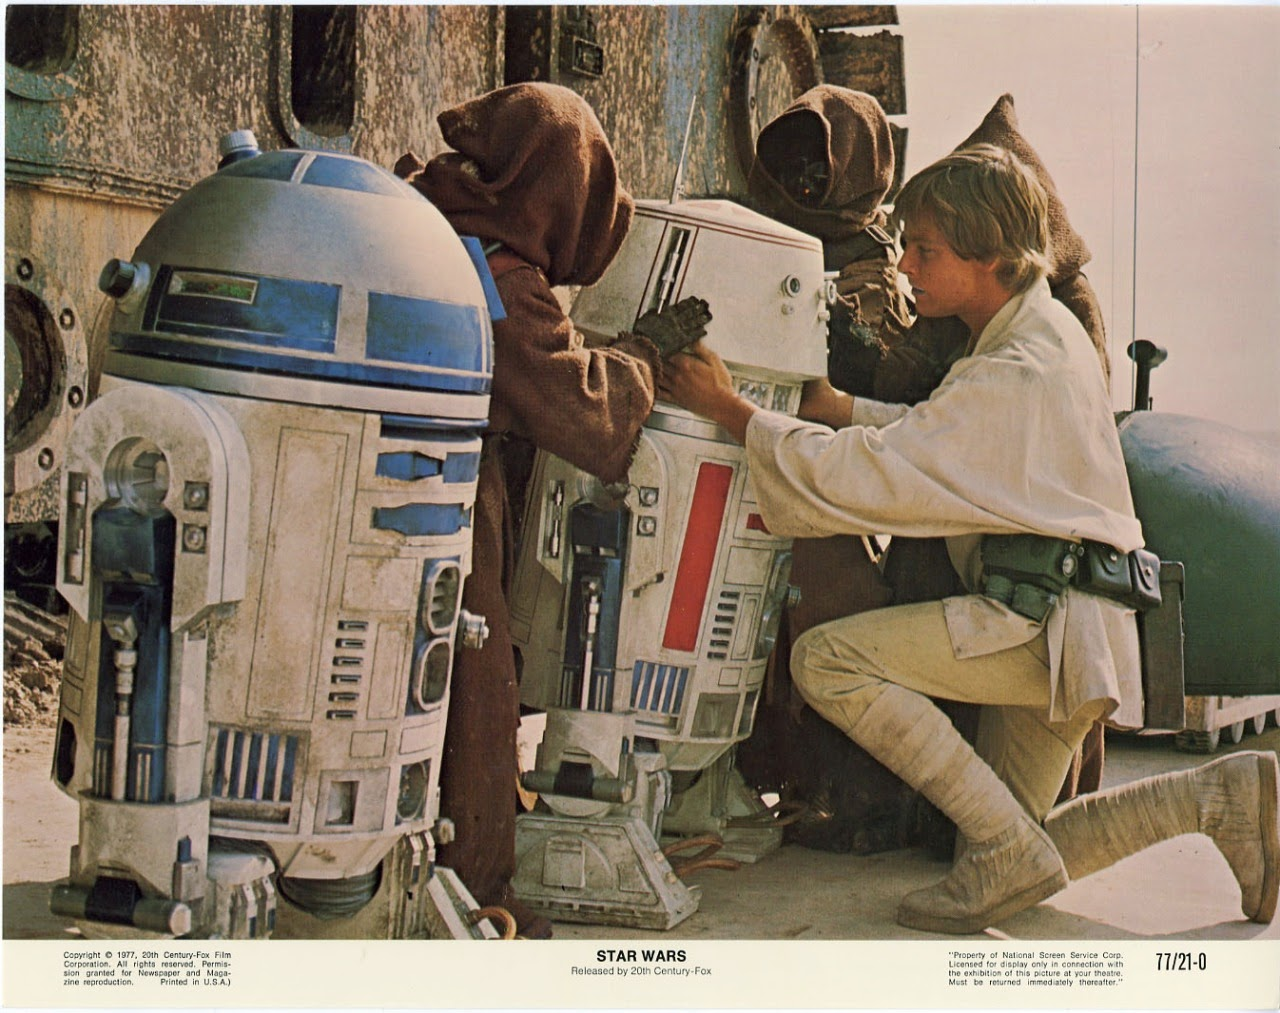 Beautiful Original Star Wars Lobby Card Set From 1977